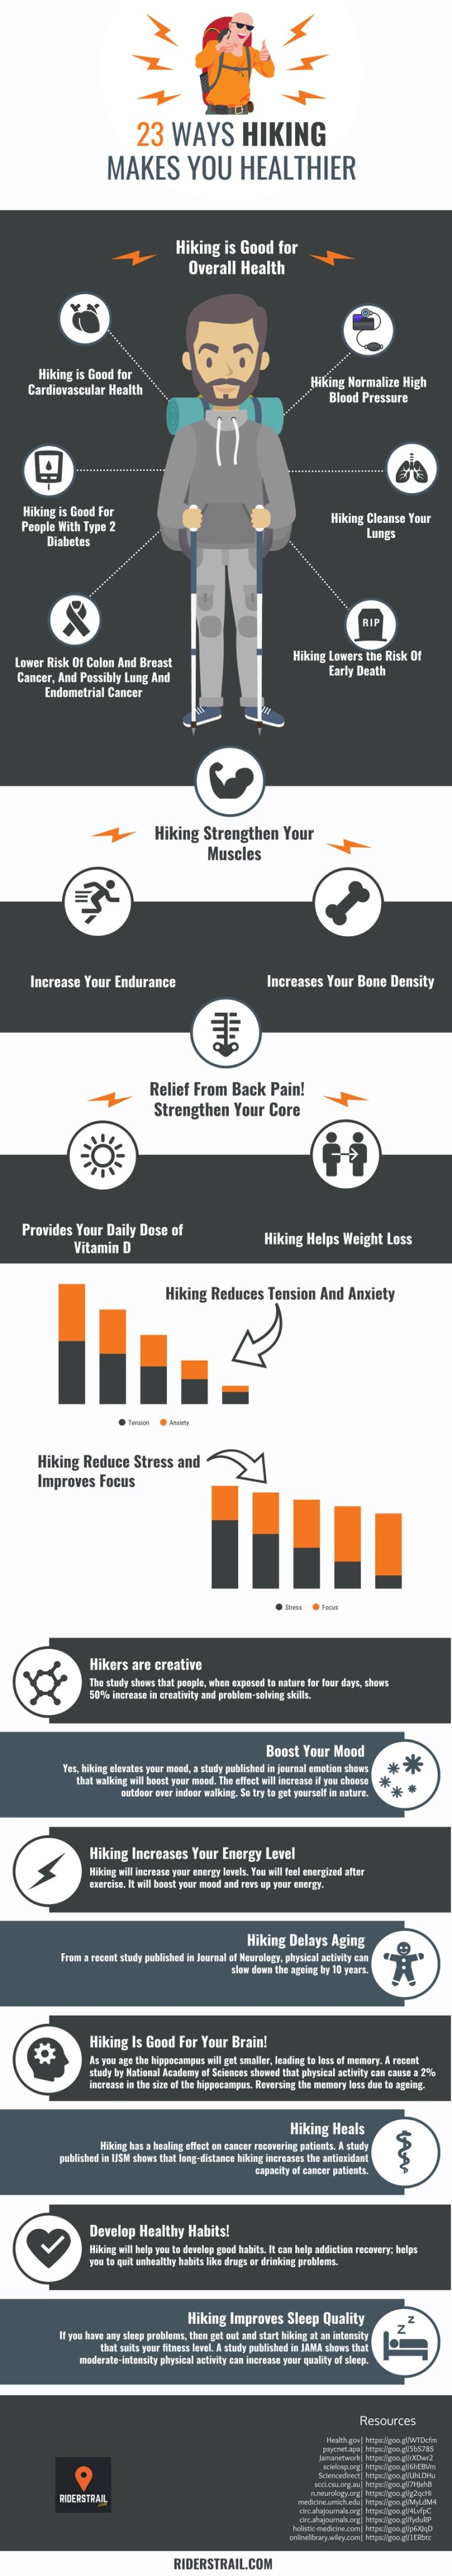 23 Ways Hiking Makes You Healthier